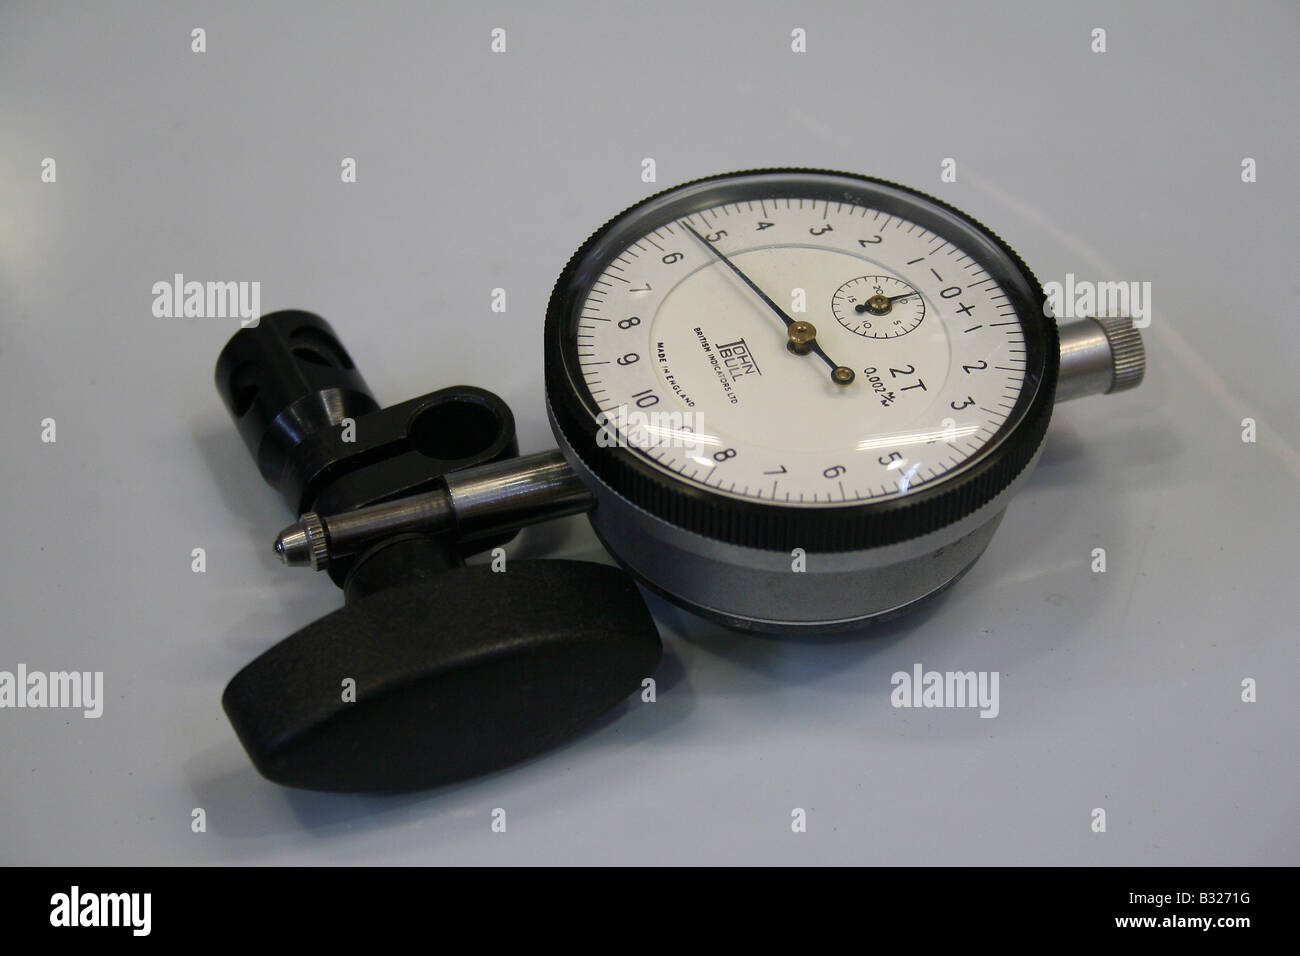 Old Vintage Car Engine Temperature Gauges